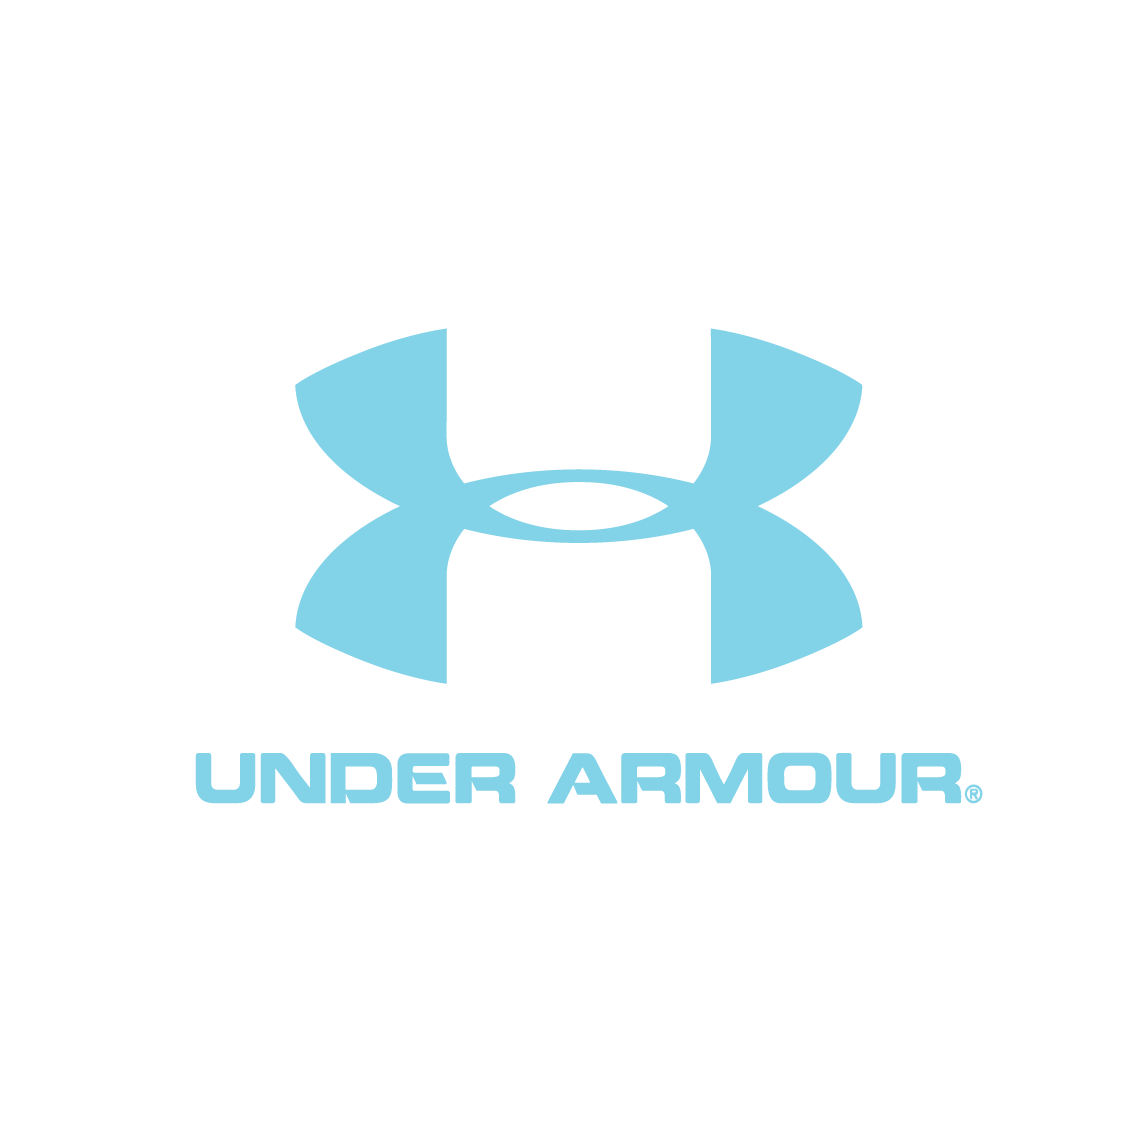 Under Armour logo - Abrella Byparaplyer